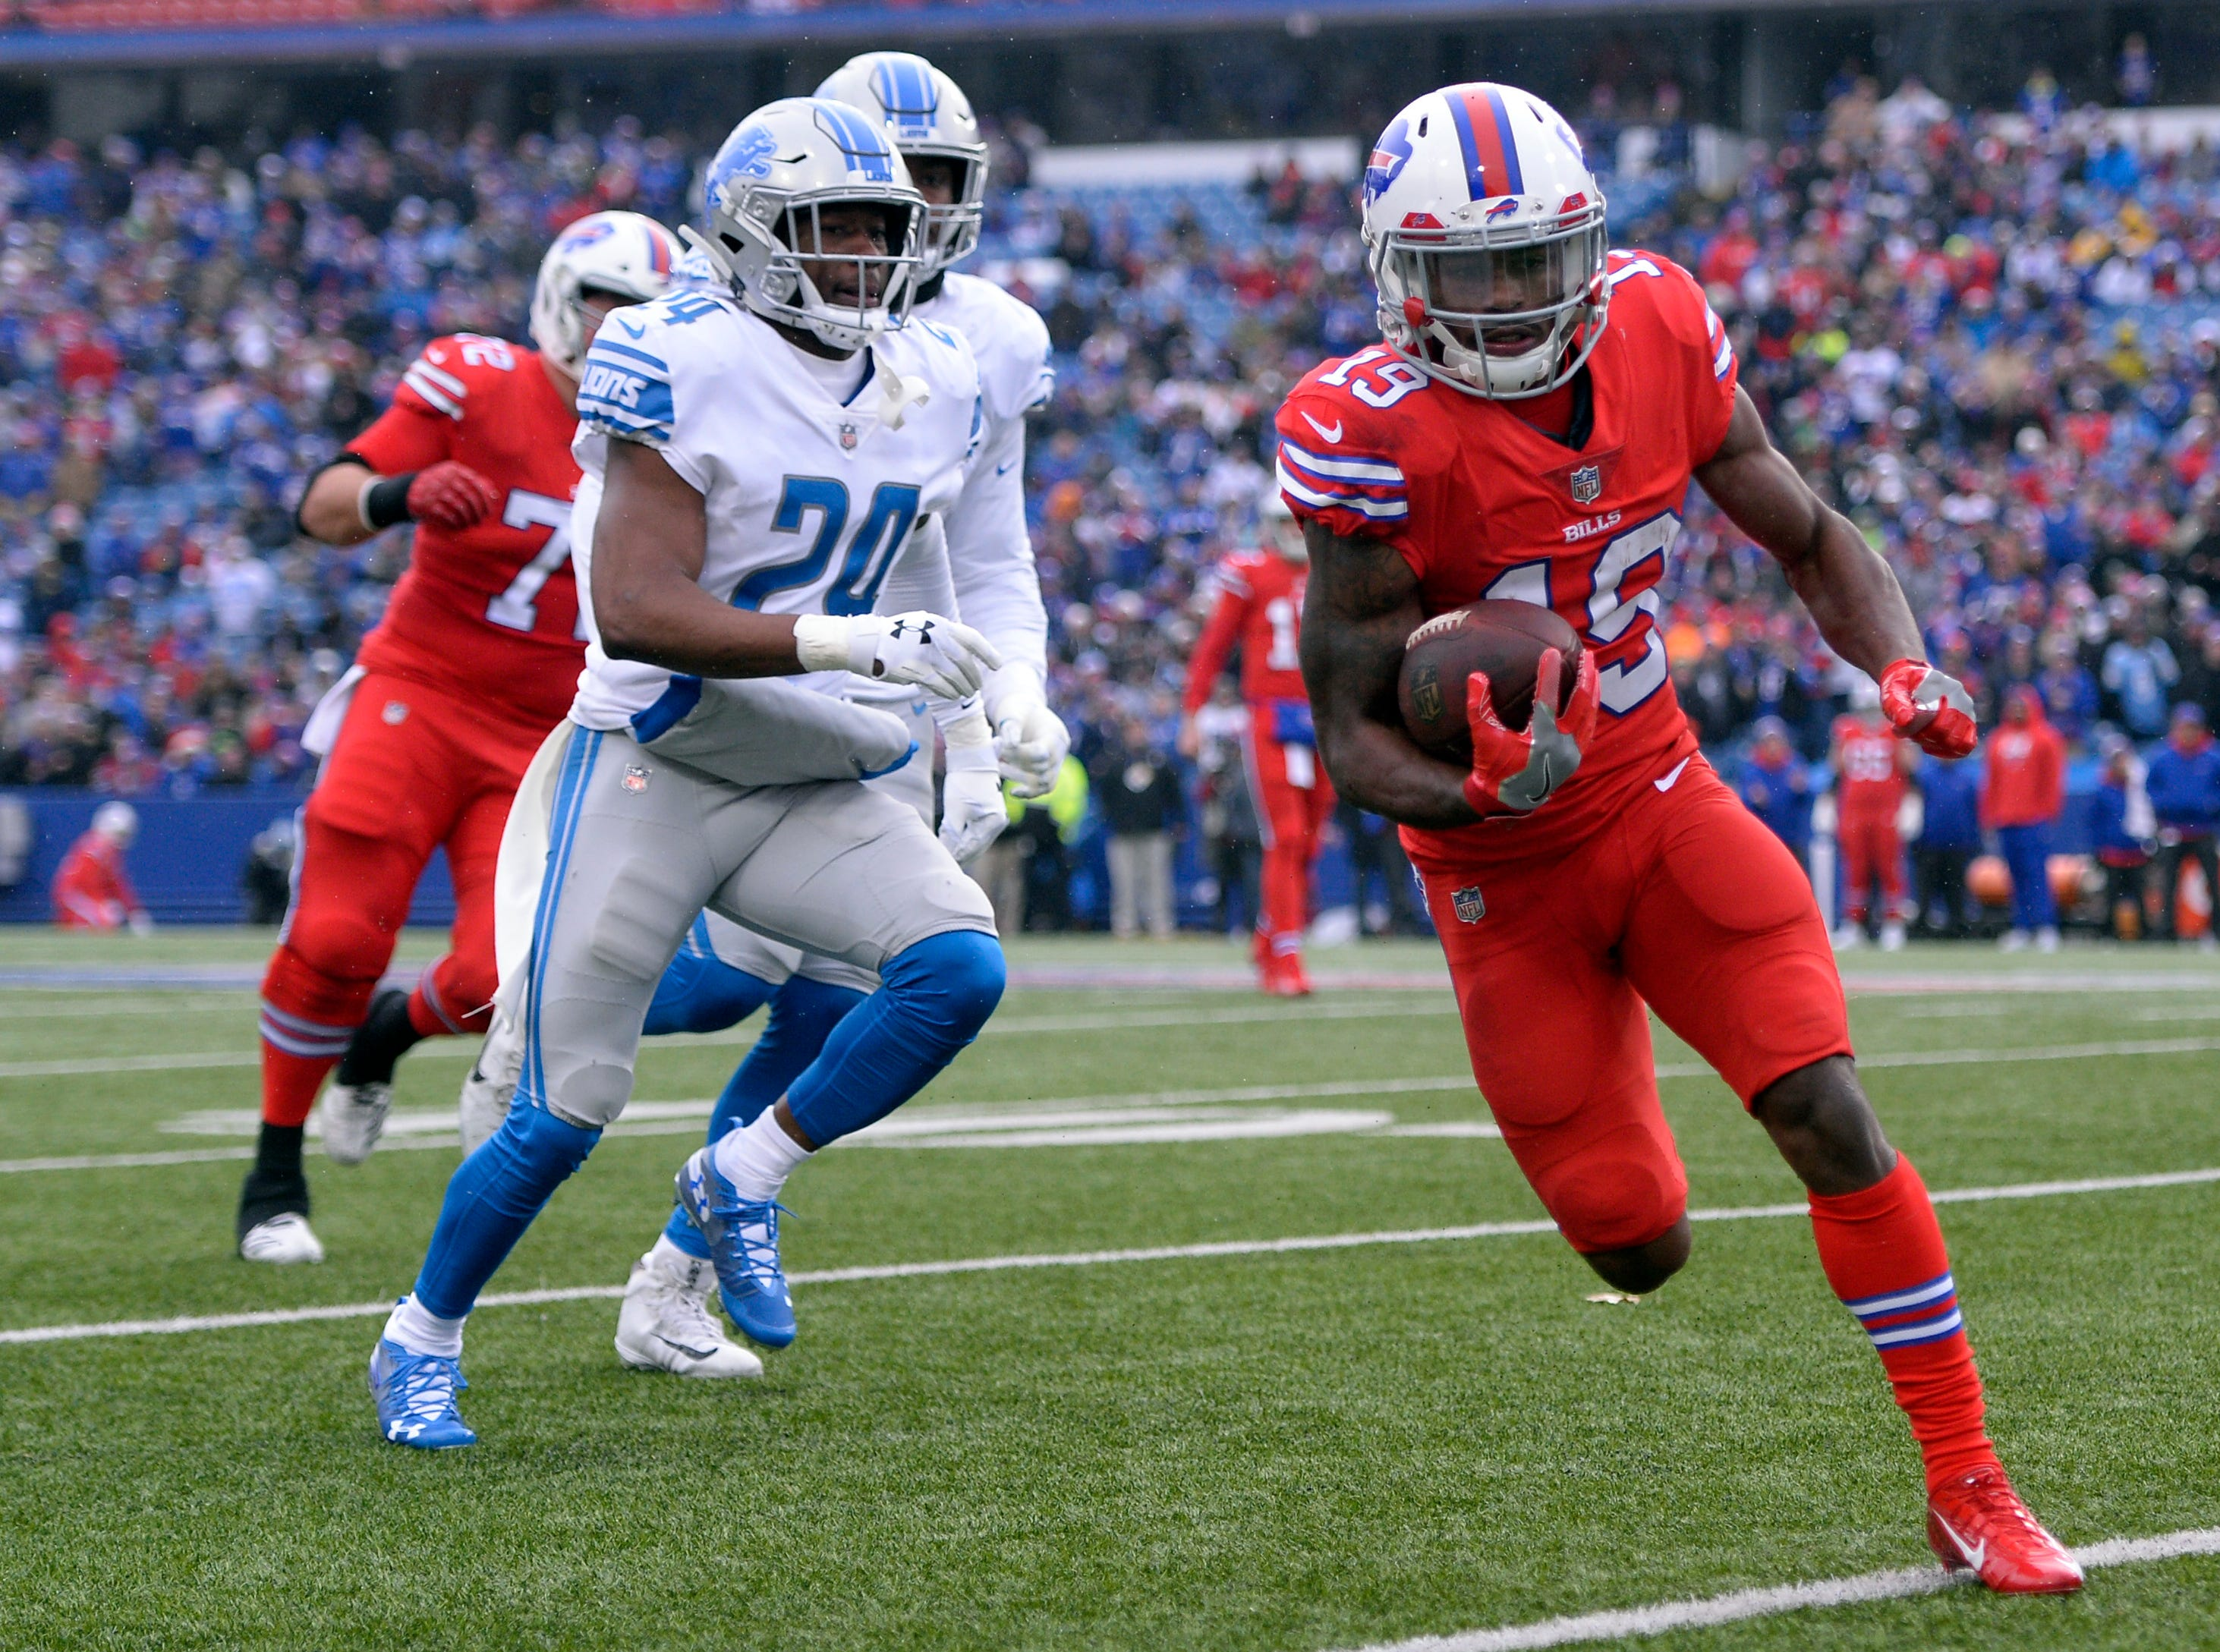 Buffalo Bills wide receiver Isaiah McKenzie, right, rushes during the first half.